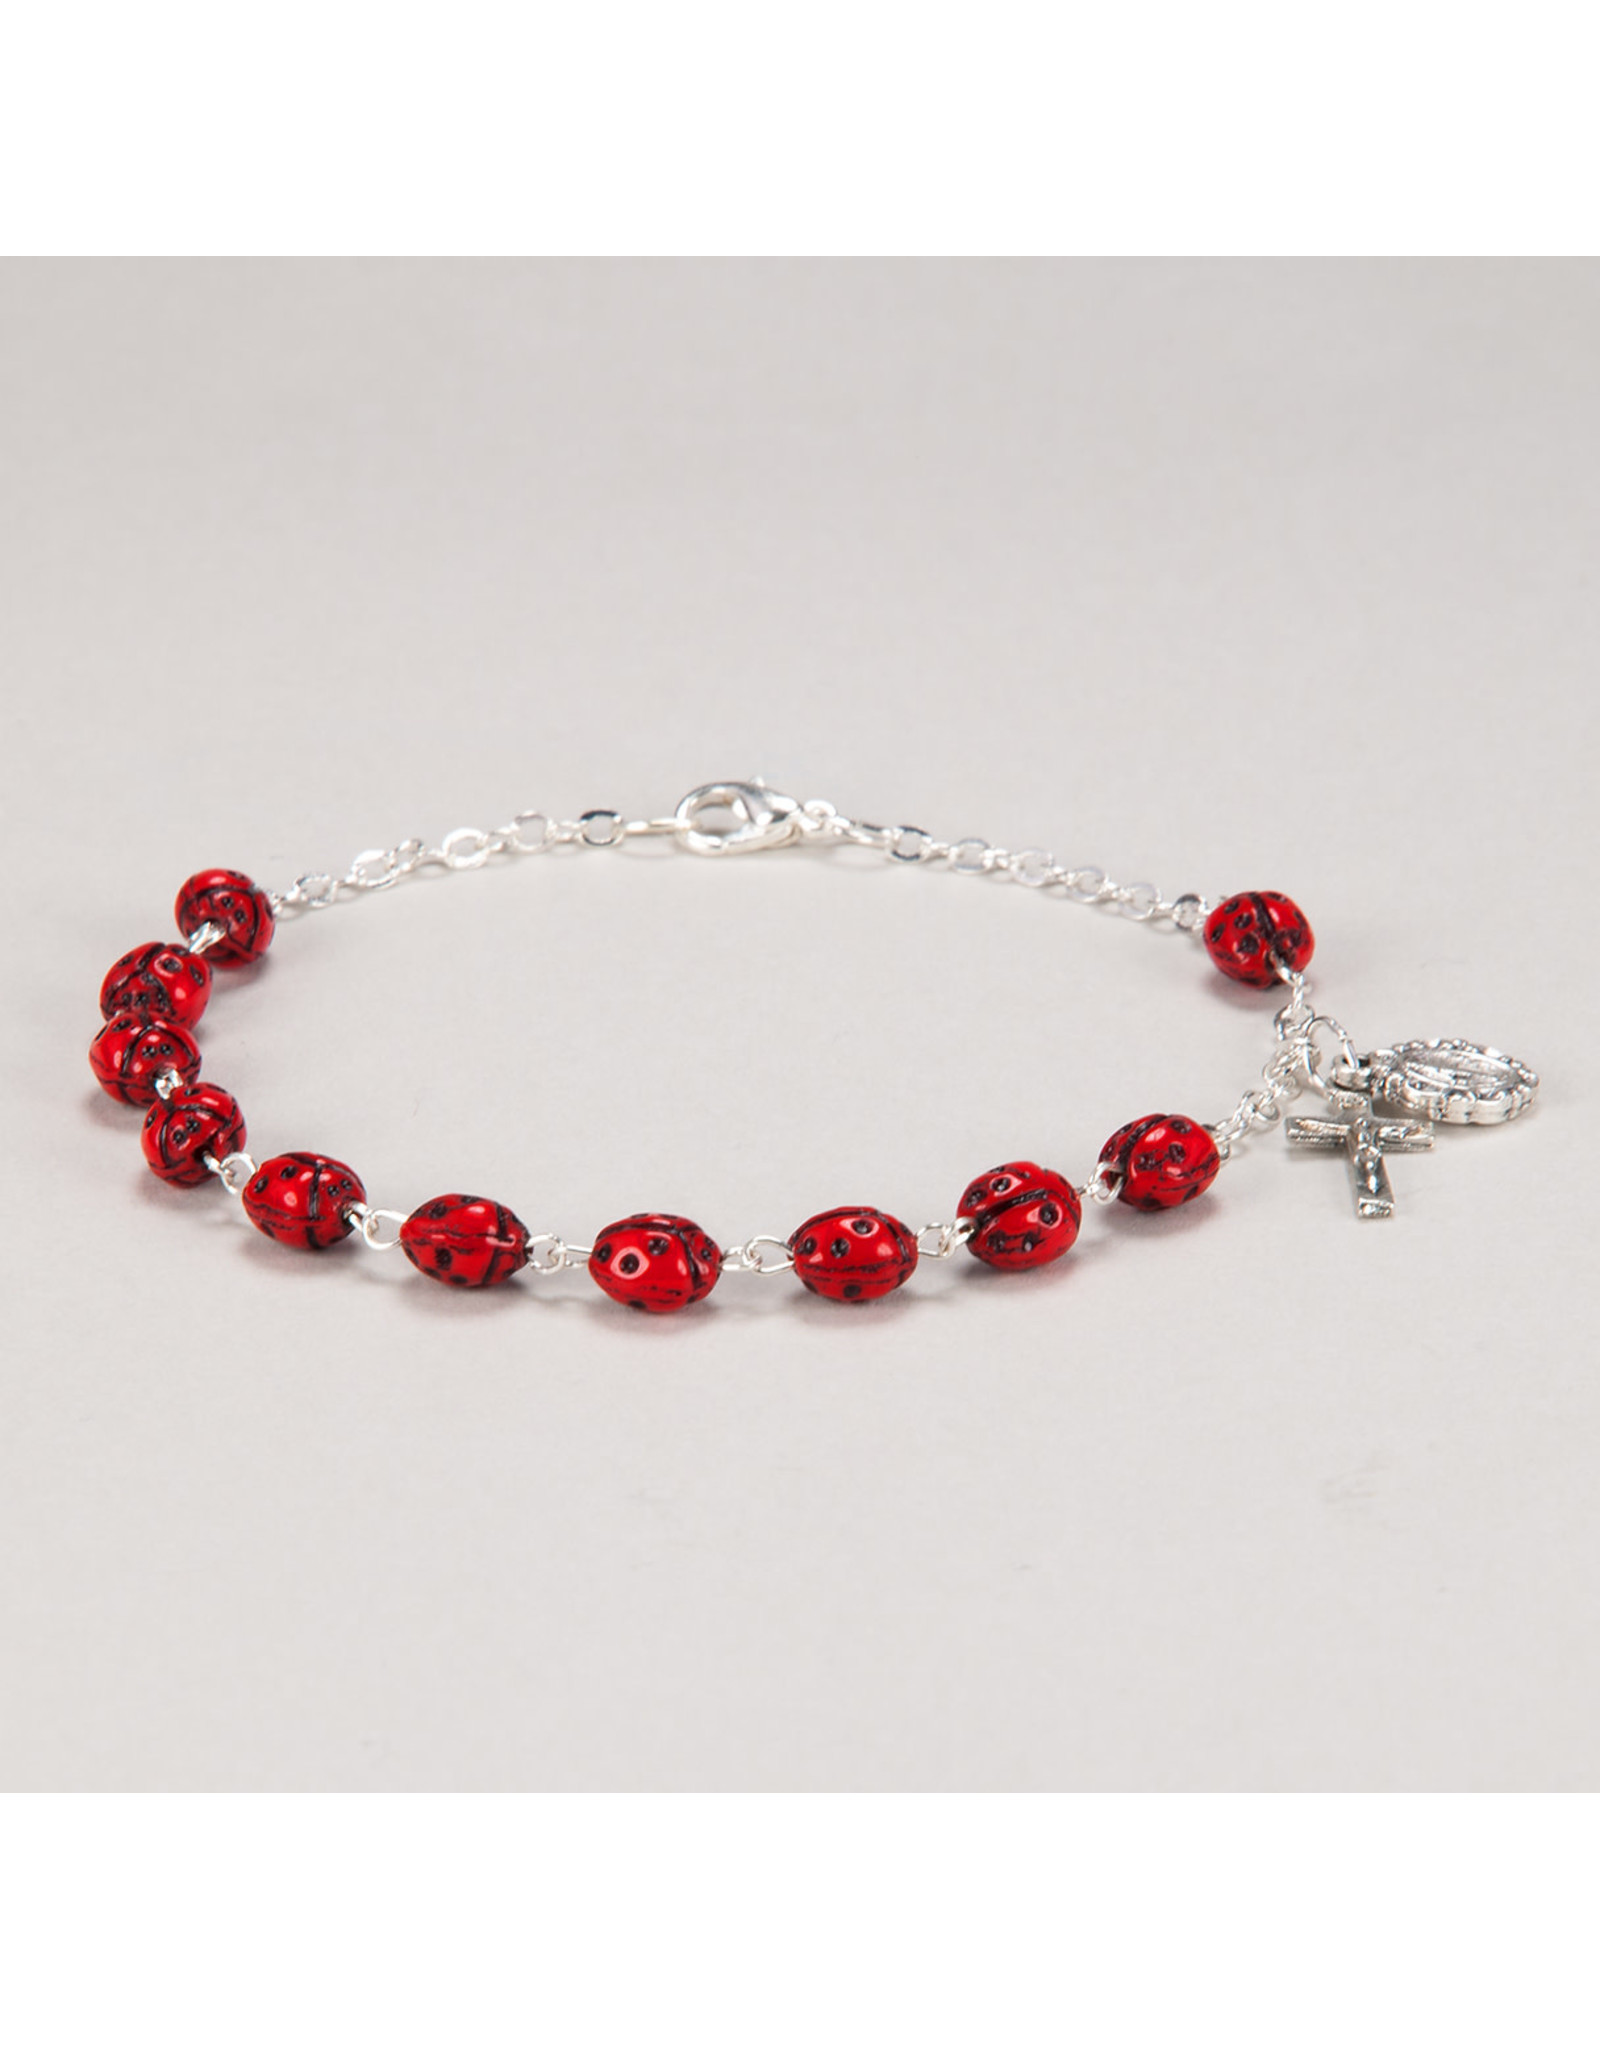 Hirten 7mm Metal Red Ladybug Rosary Bracelet with Cross and Center Boxed